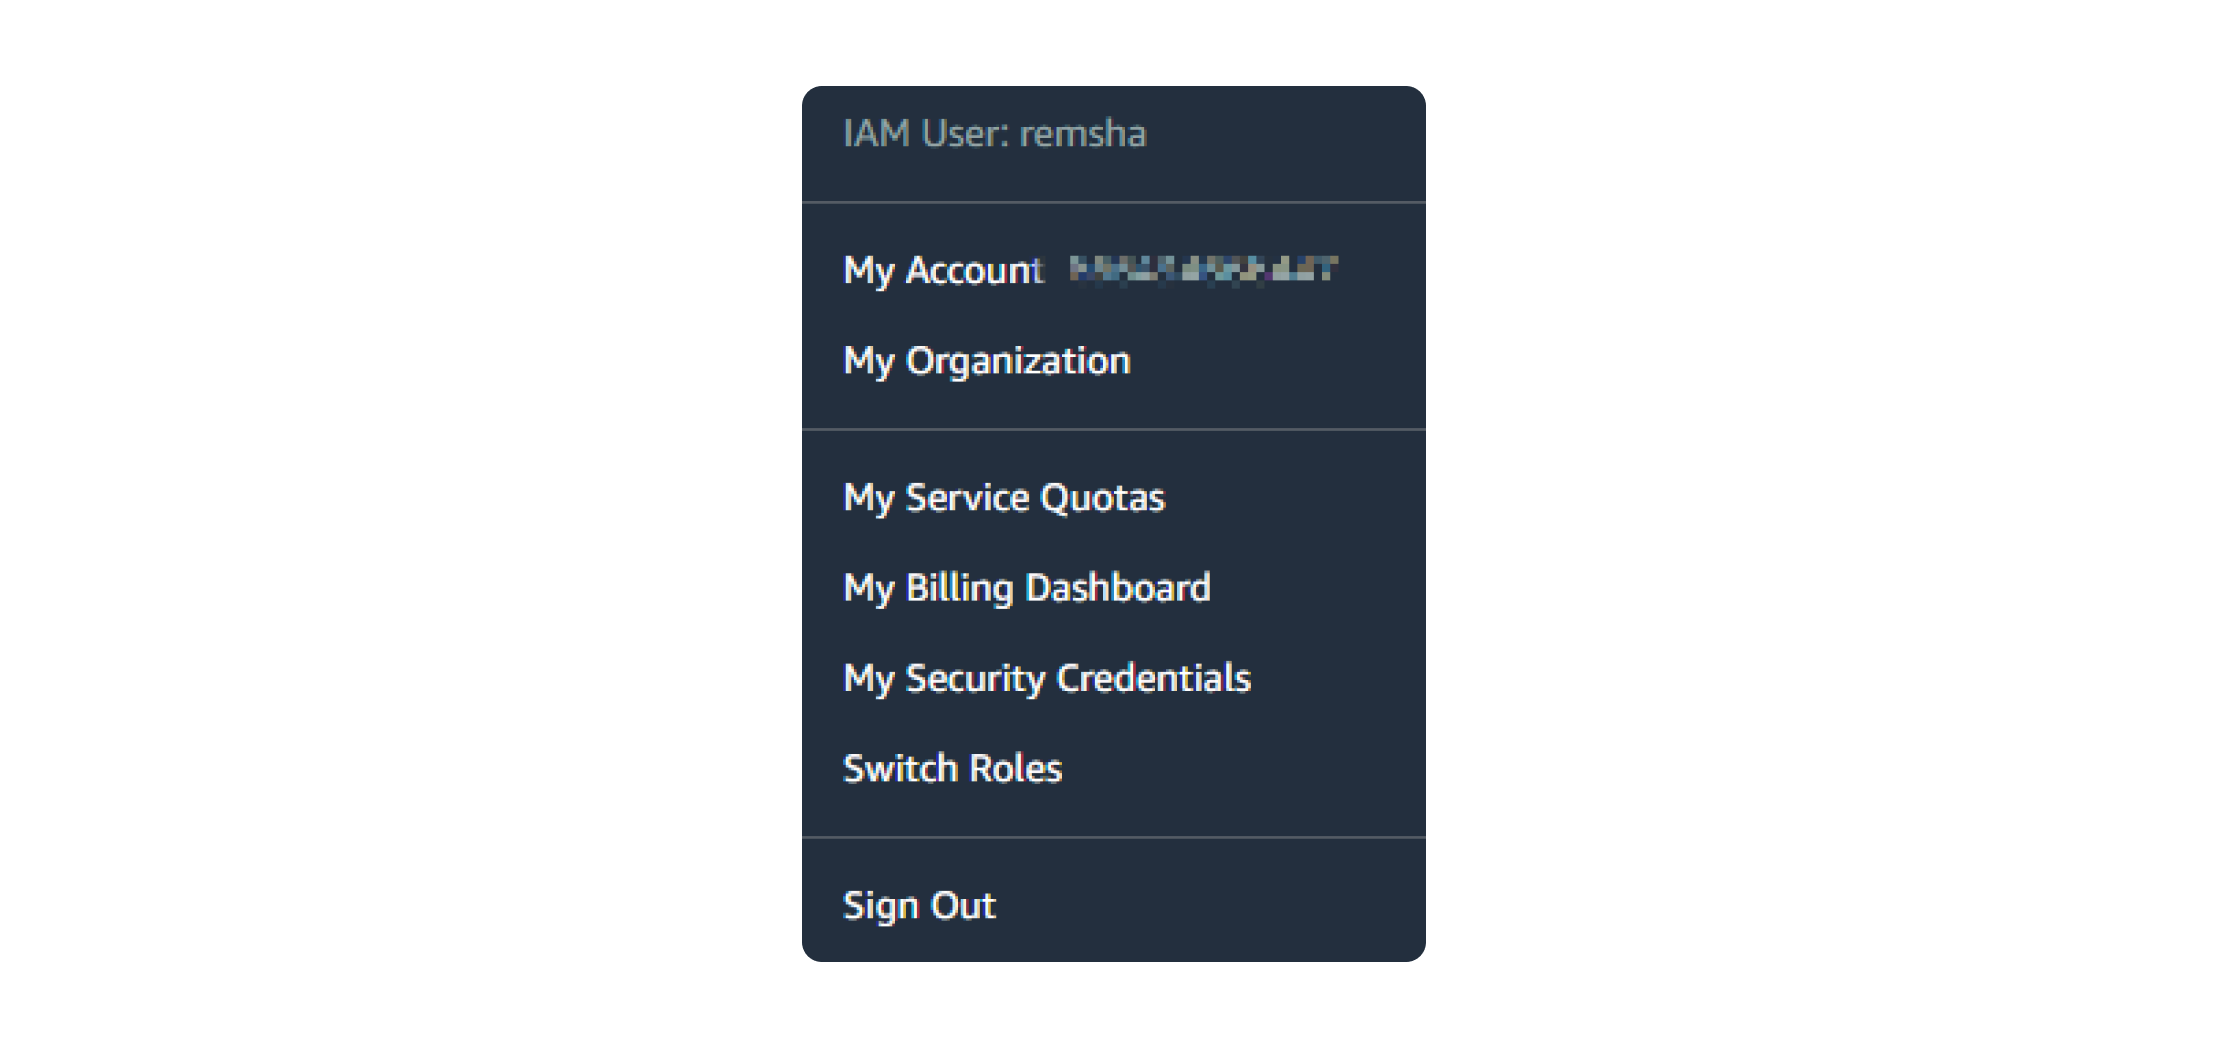 Setting the account